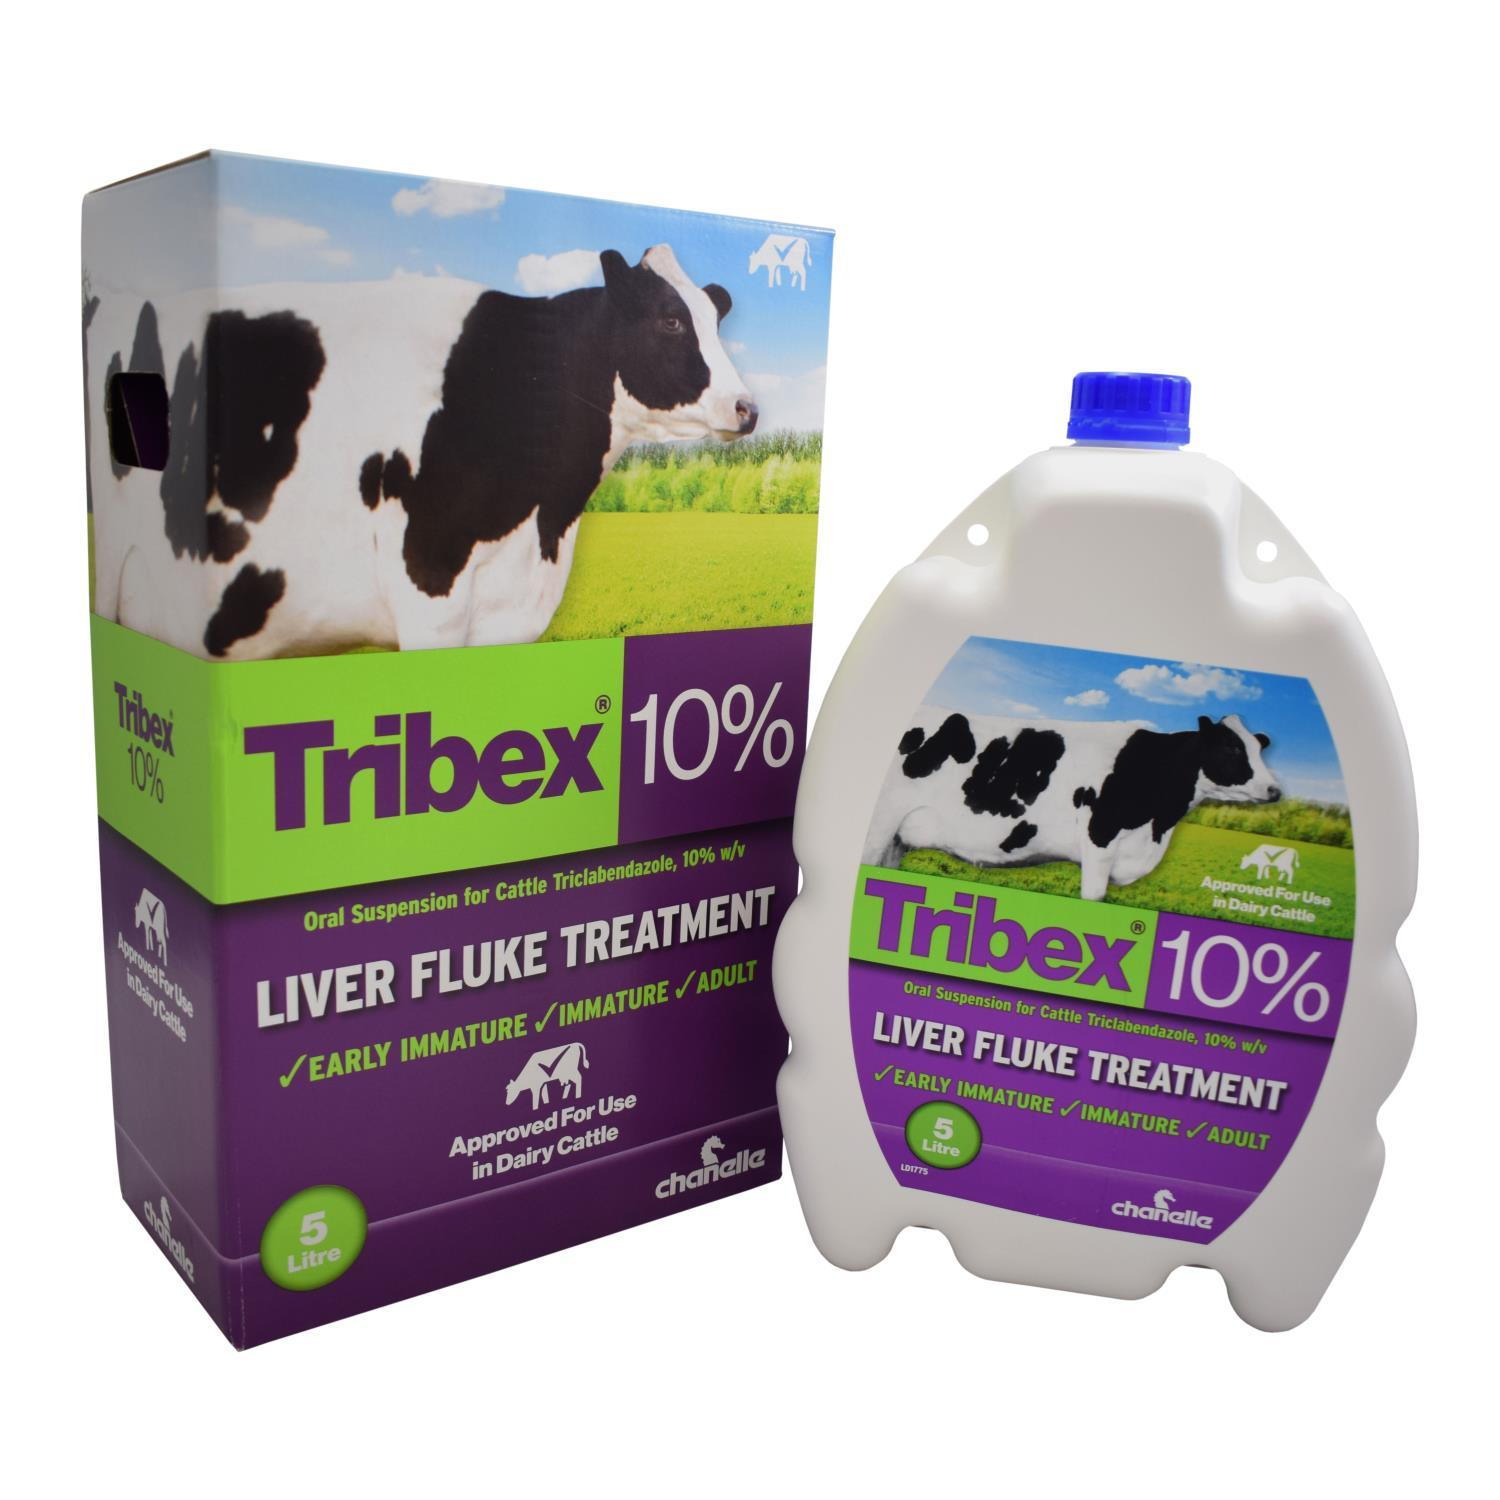 Tribex Cattle 10% Drench